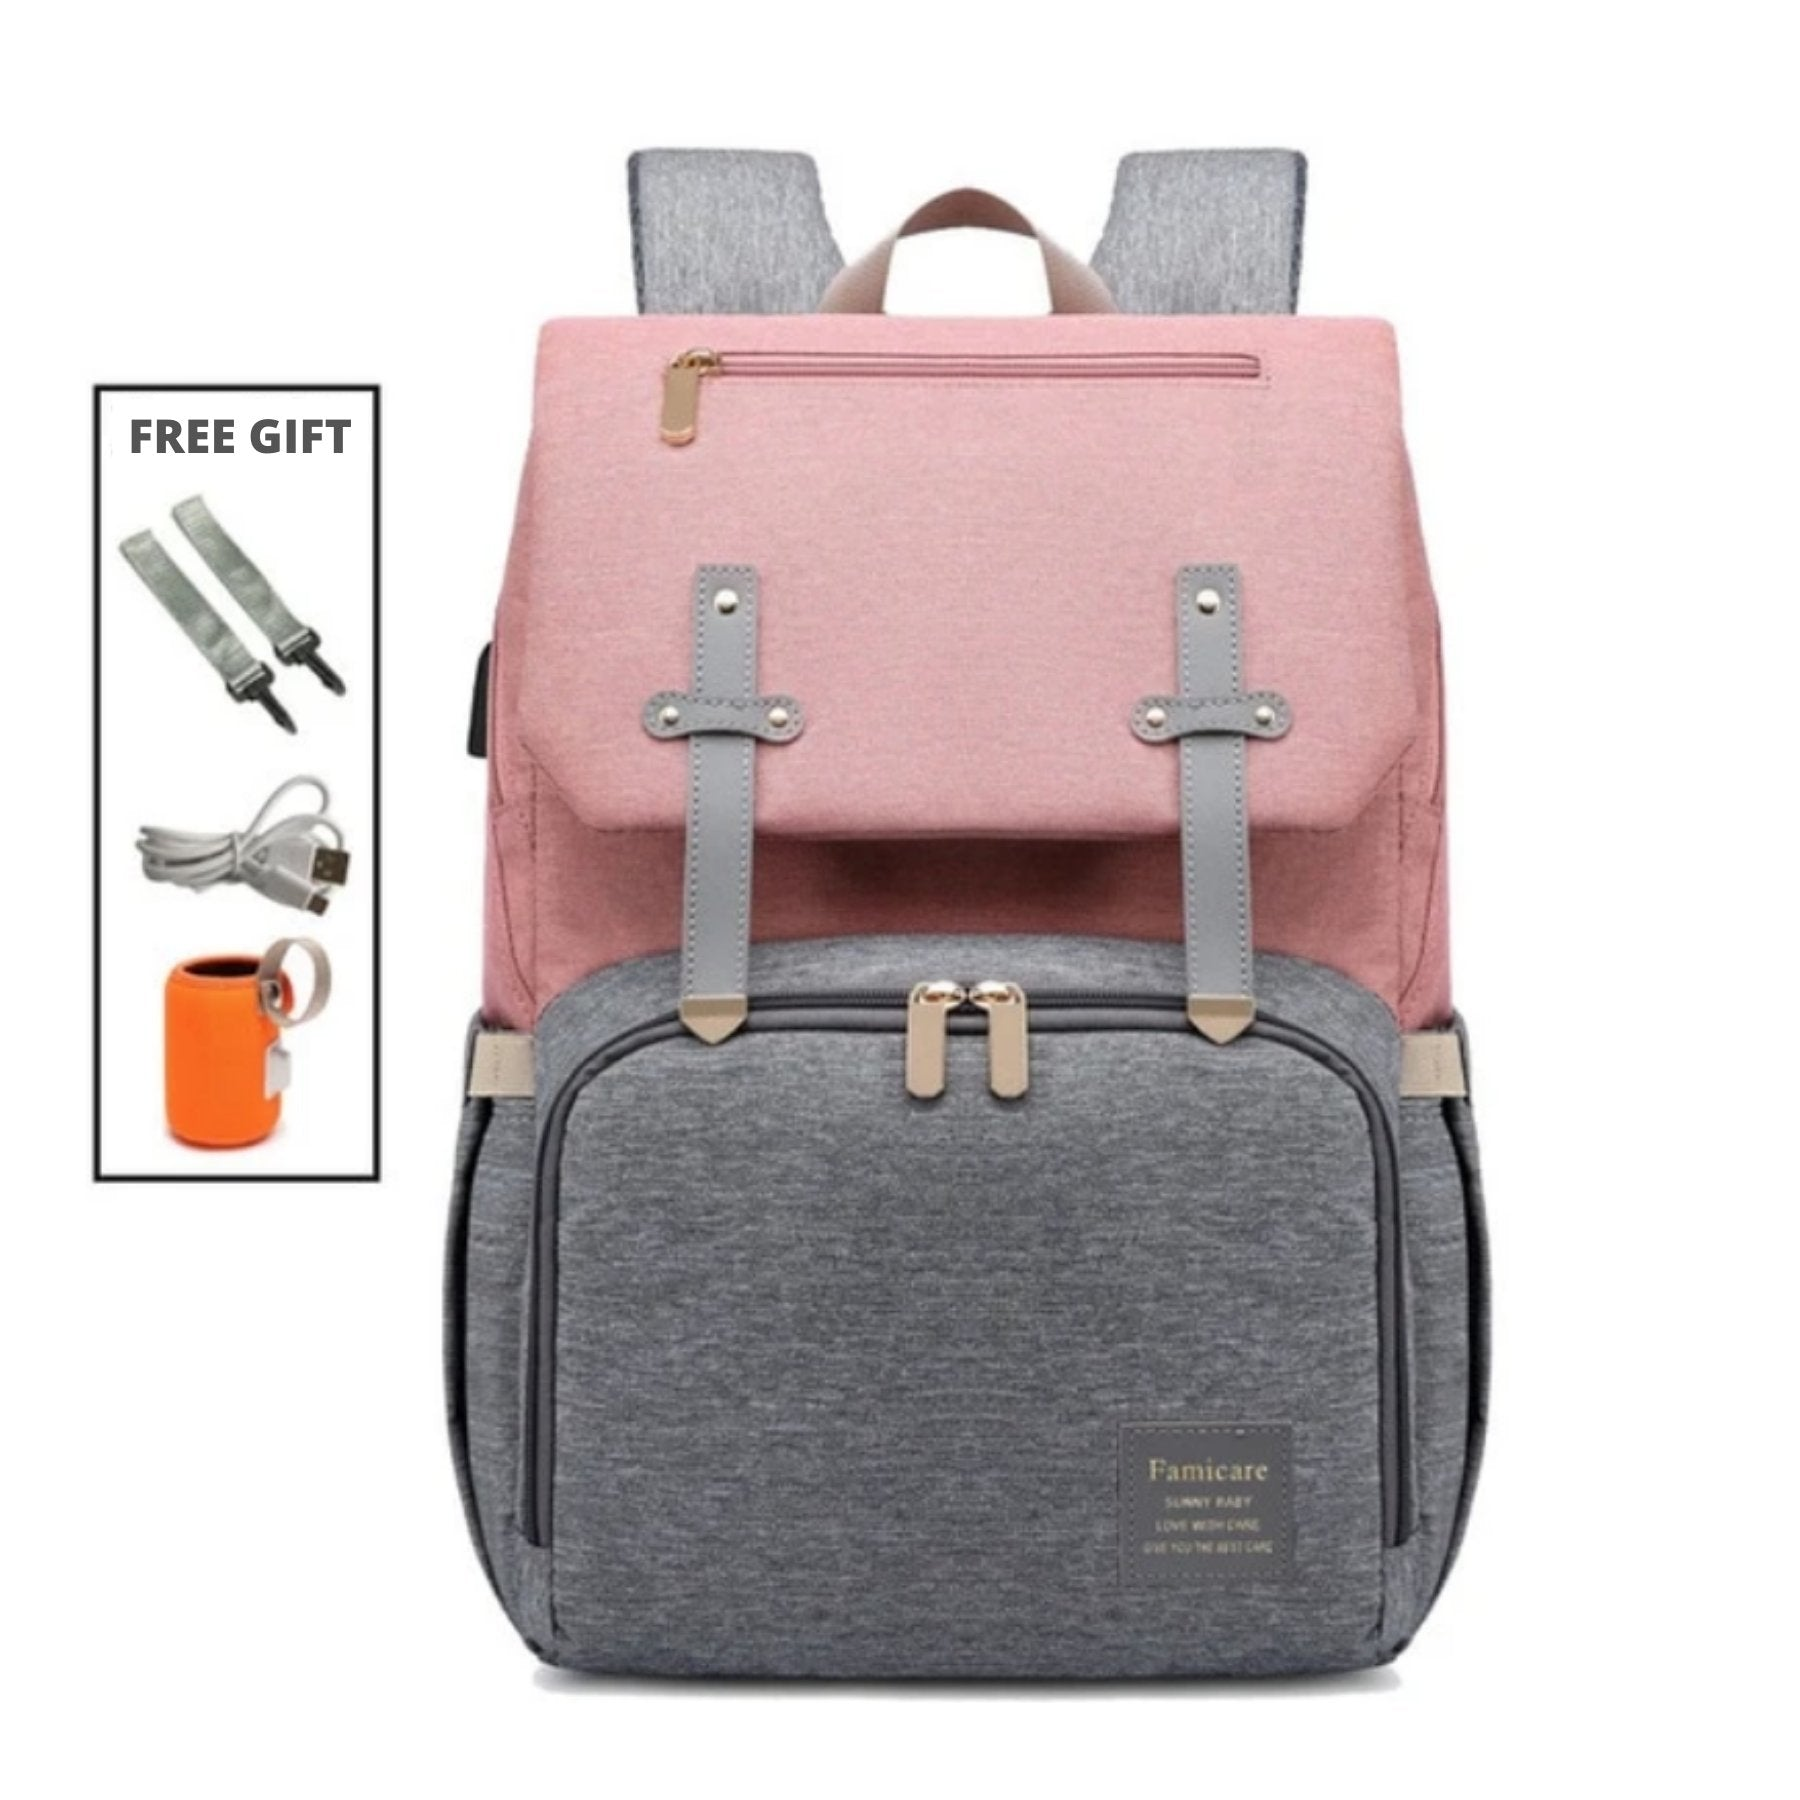 FamiCare Diaper Bag - The Outstanding Store